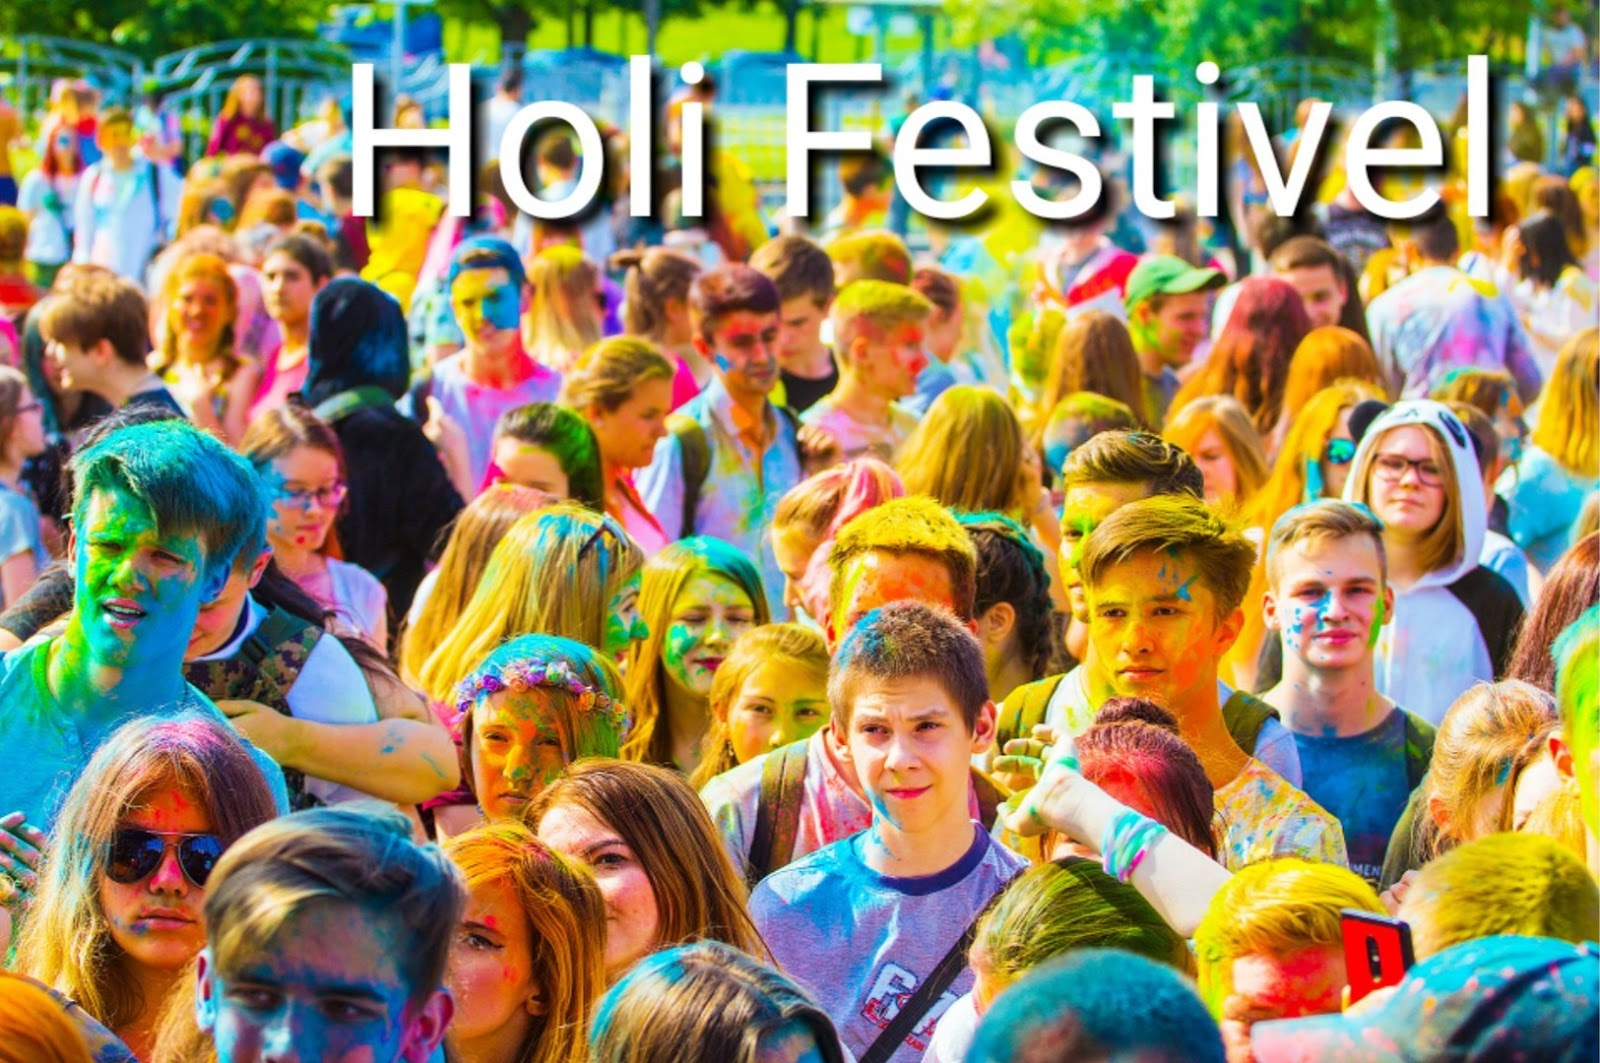 Holi festival in India date: 20 march 2019